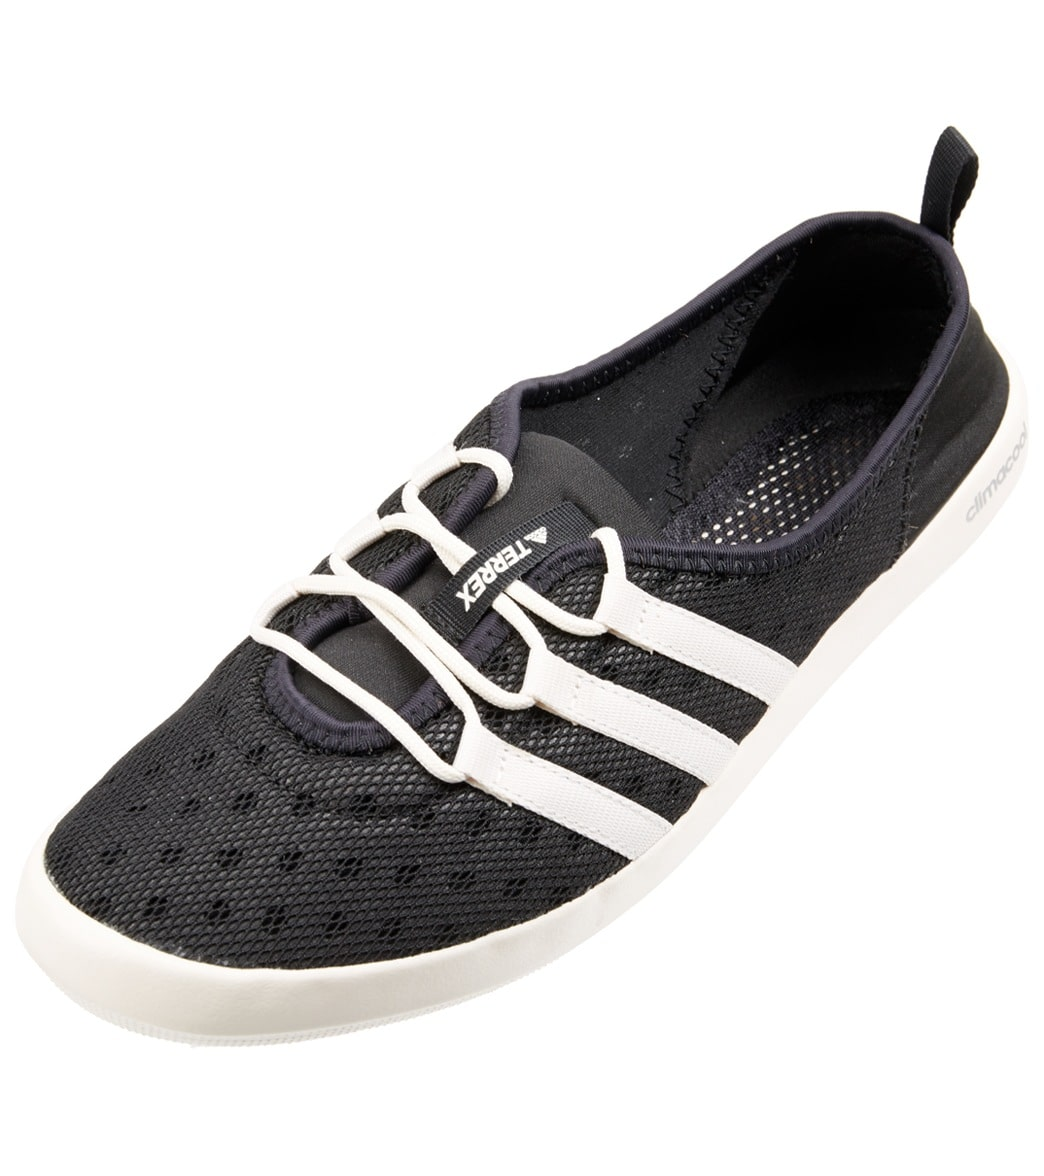 Adidas Women's Climacool Boat Sleek Water Shoes - Black/Chalk White/Matte Silver 11 Eva/Foam/Rubber - Swimoutlet.com